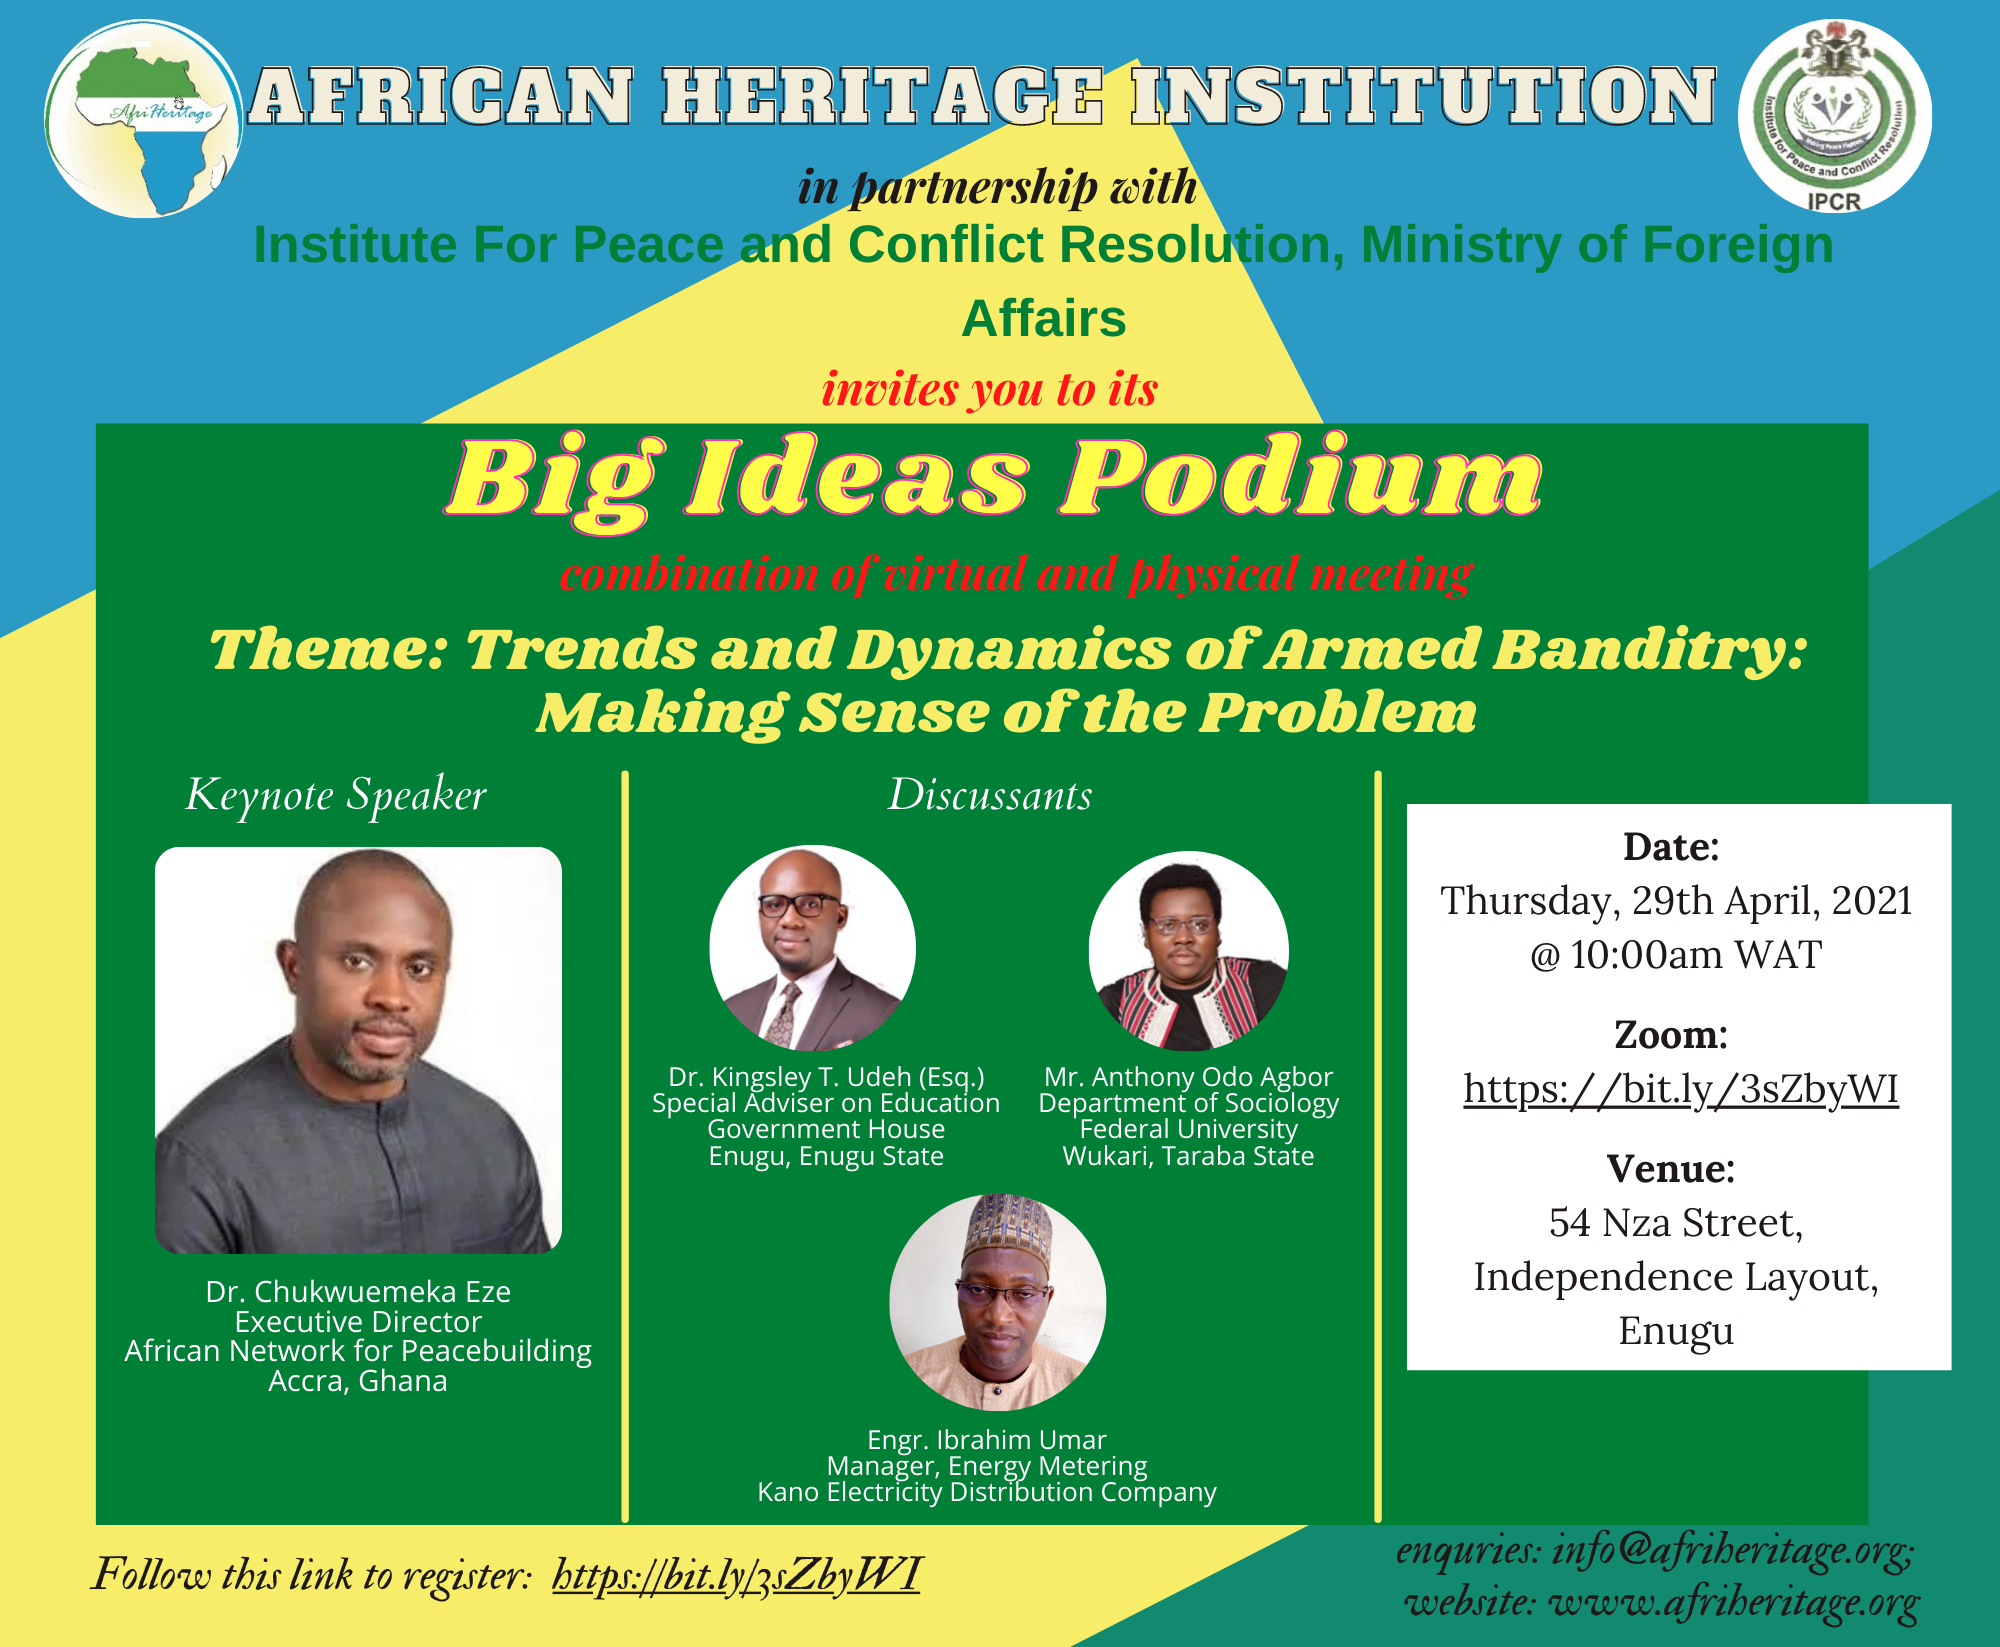 African Heritage Institution Partner's the Institute for Peace and Conflict Resolution for the 2021 'Big Ideas Podium' Event